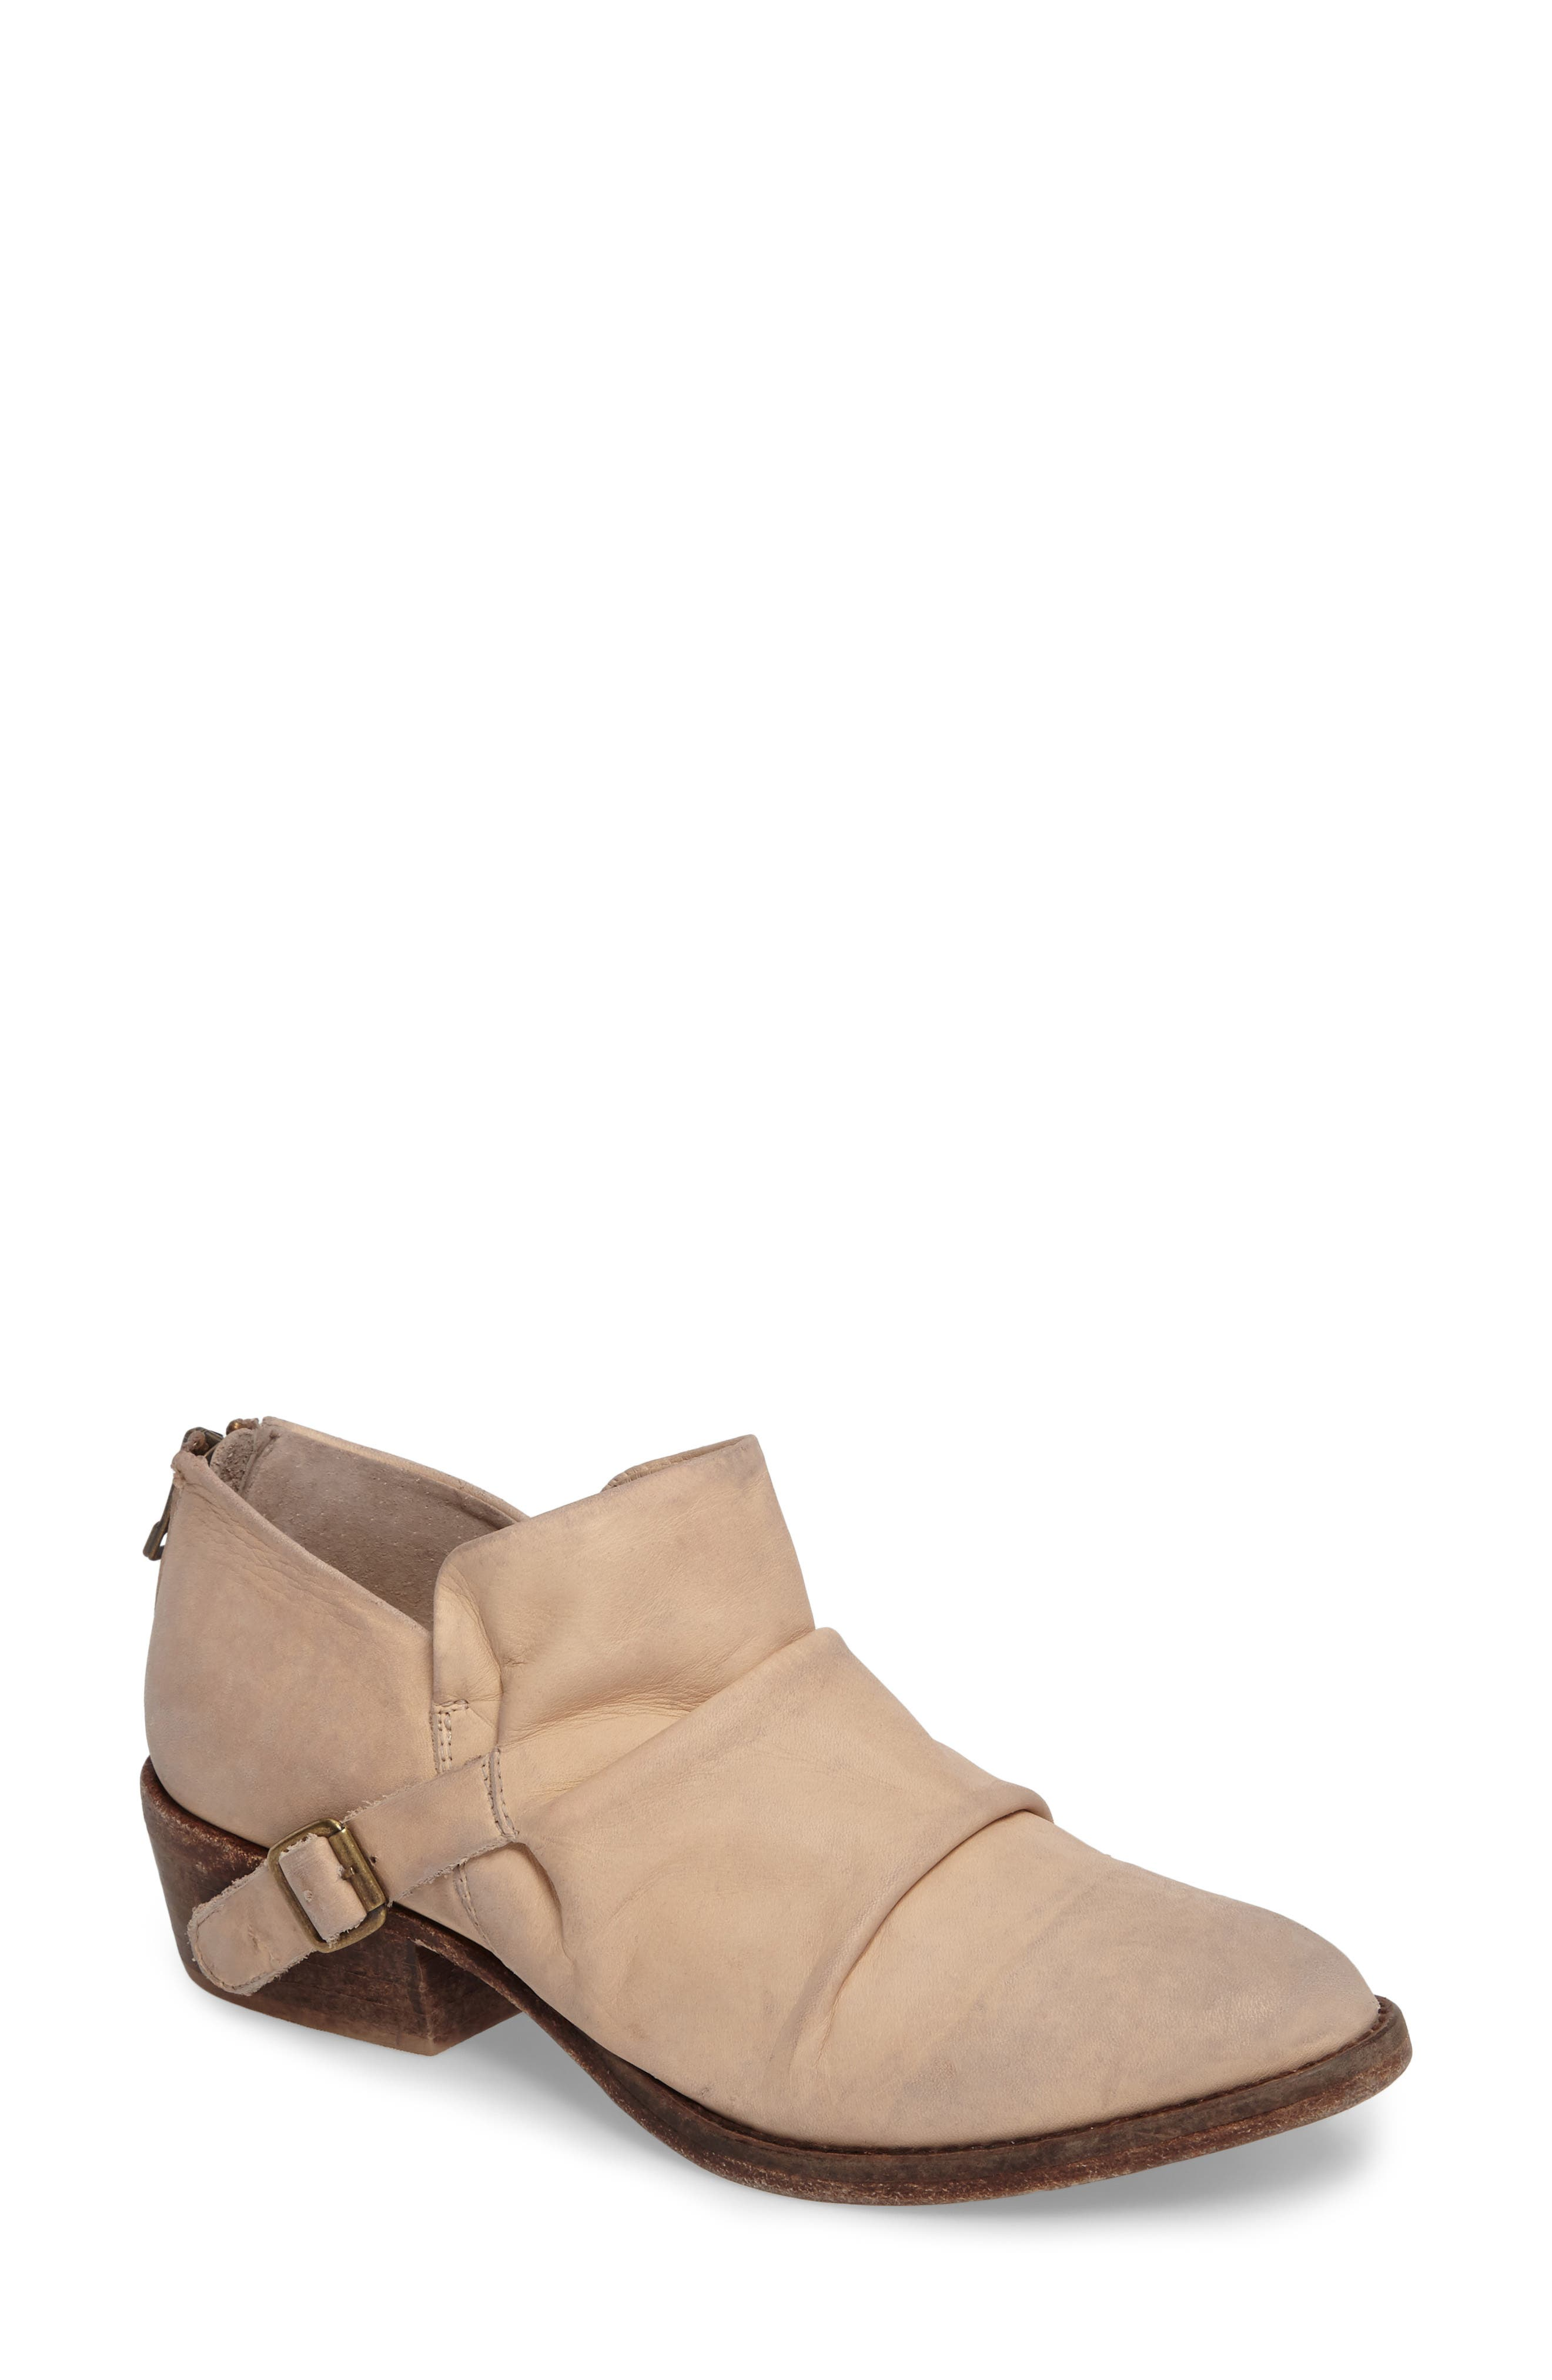 Wills Ruched Bootie,                             Main thumbnail 1, color,                             Ivory Leather